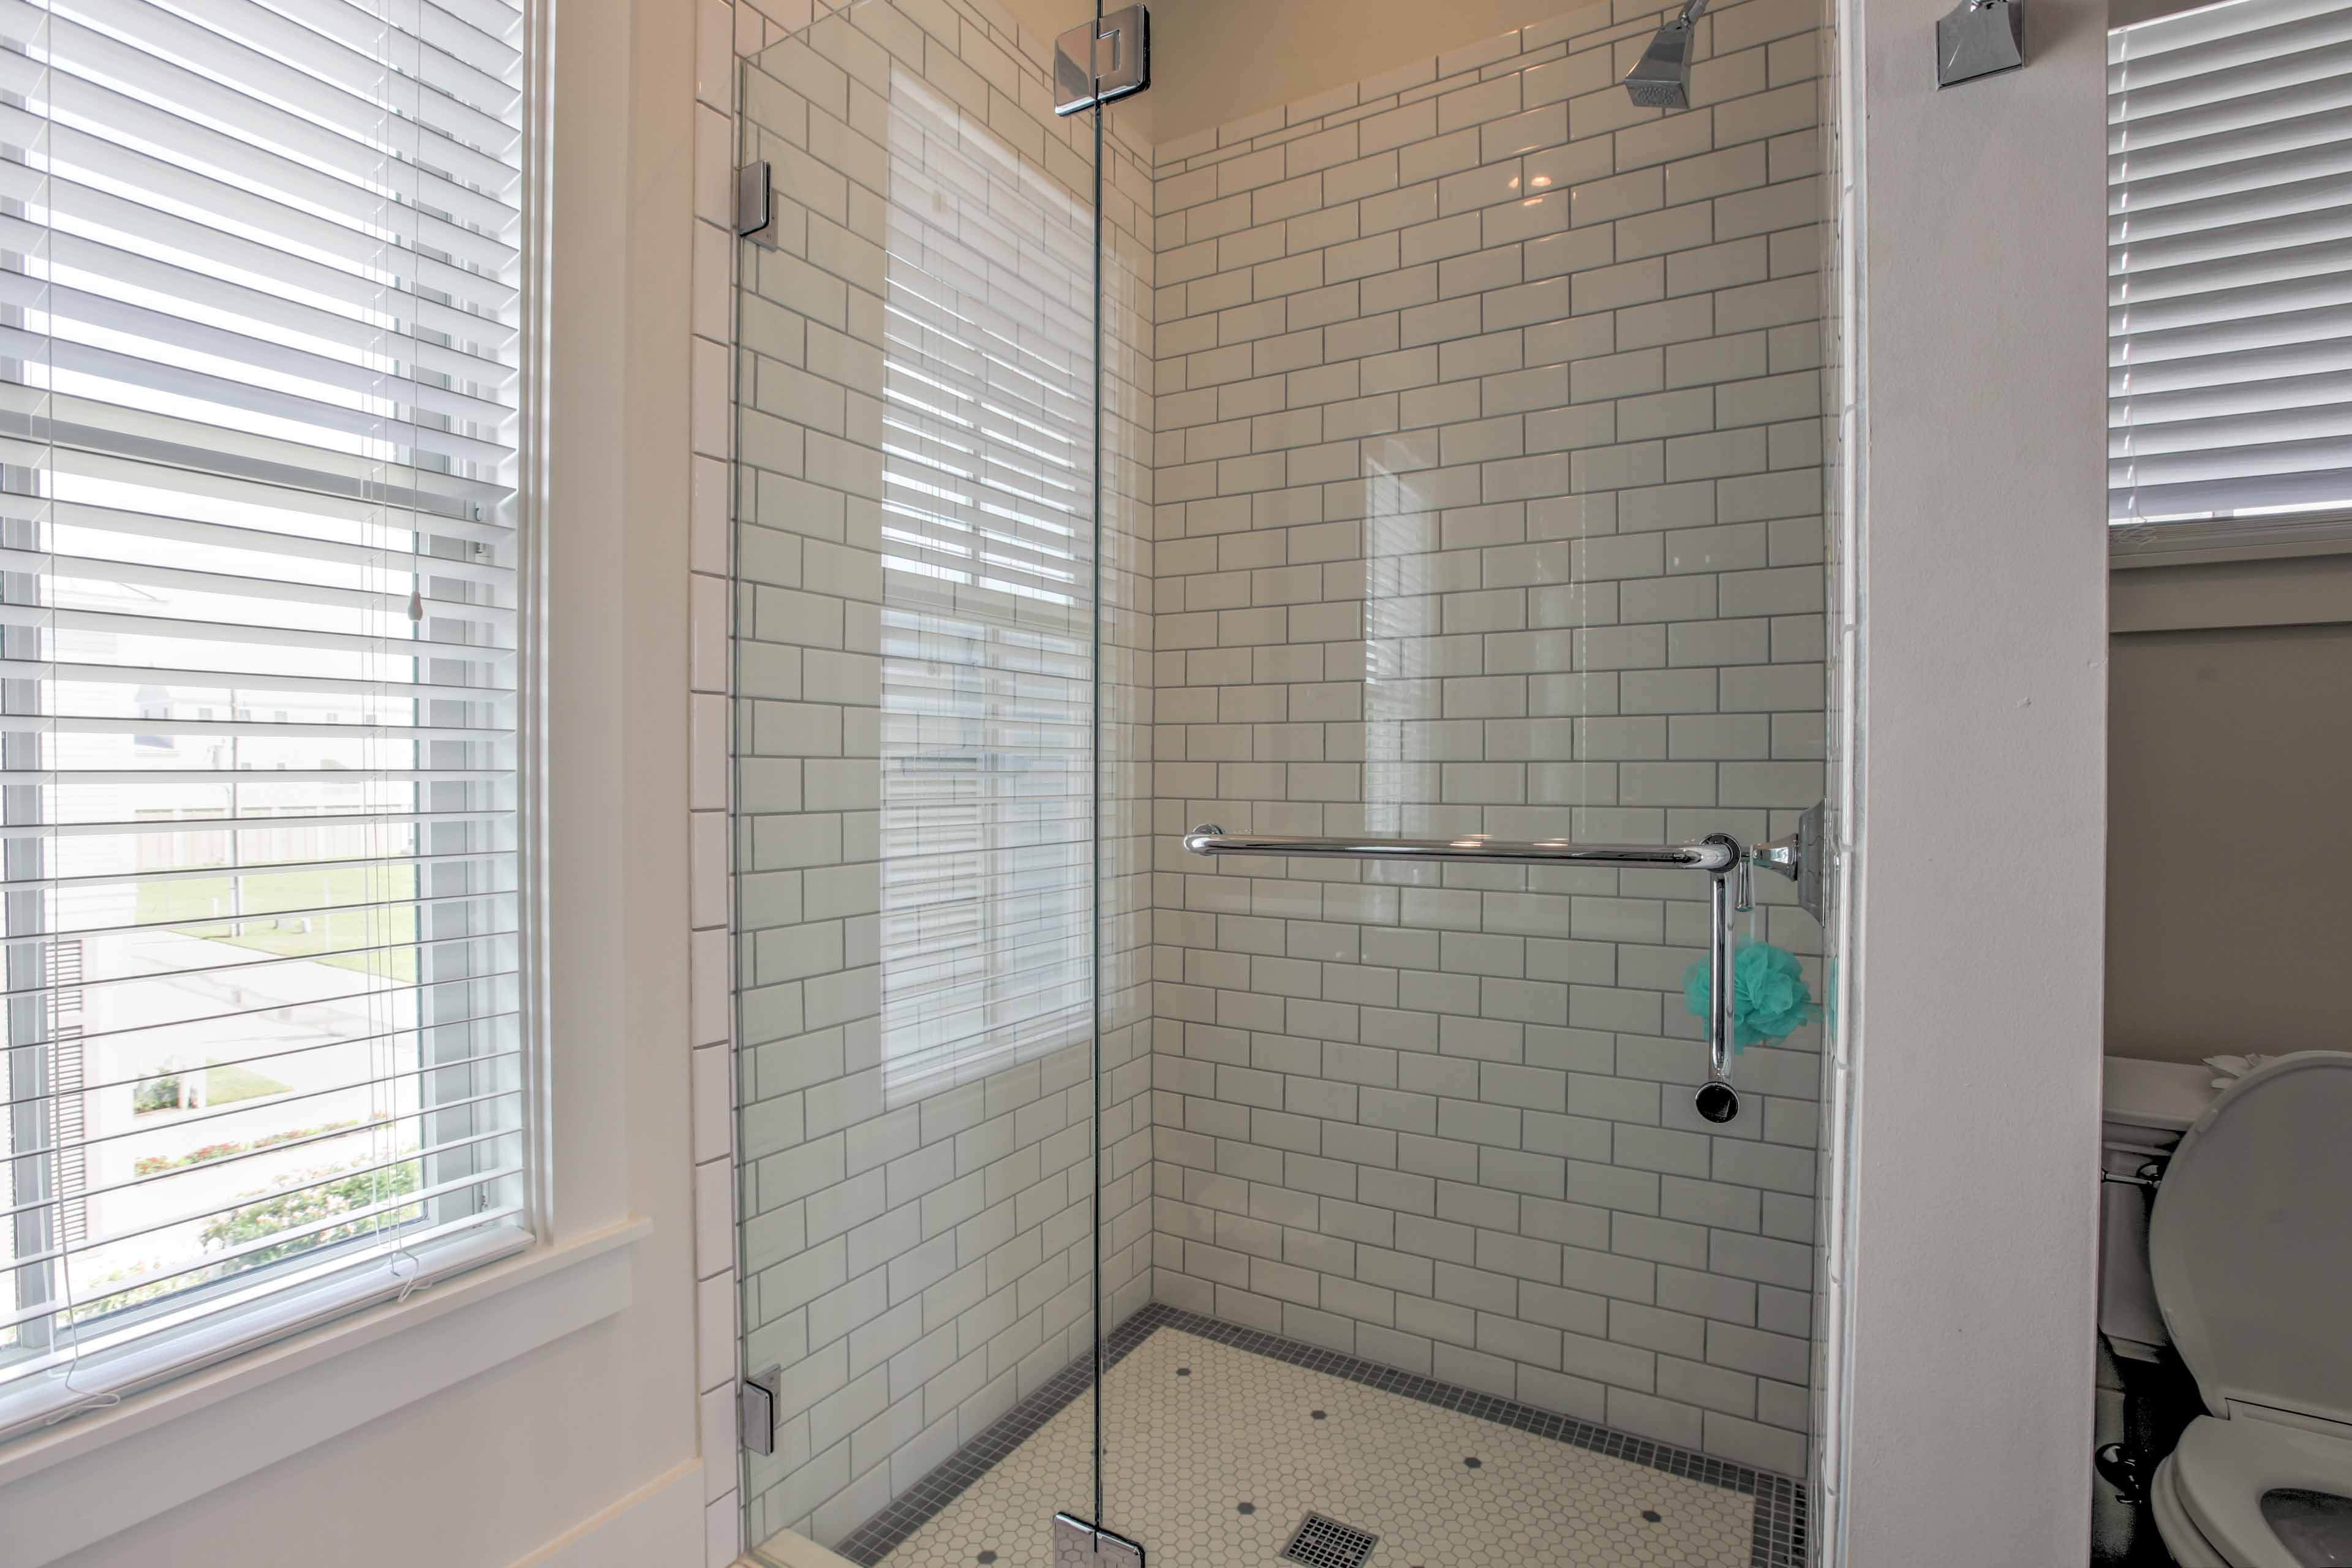 The en-suite also boasts a walk-in glass shower.